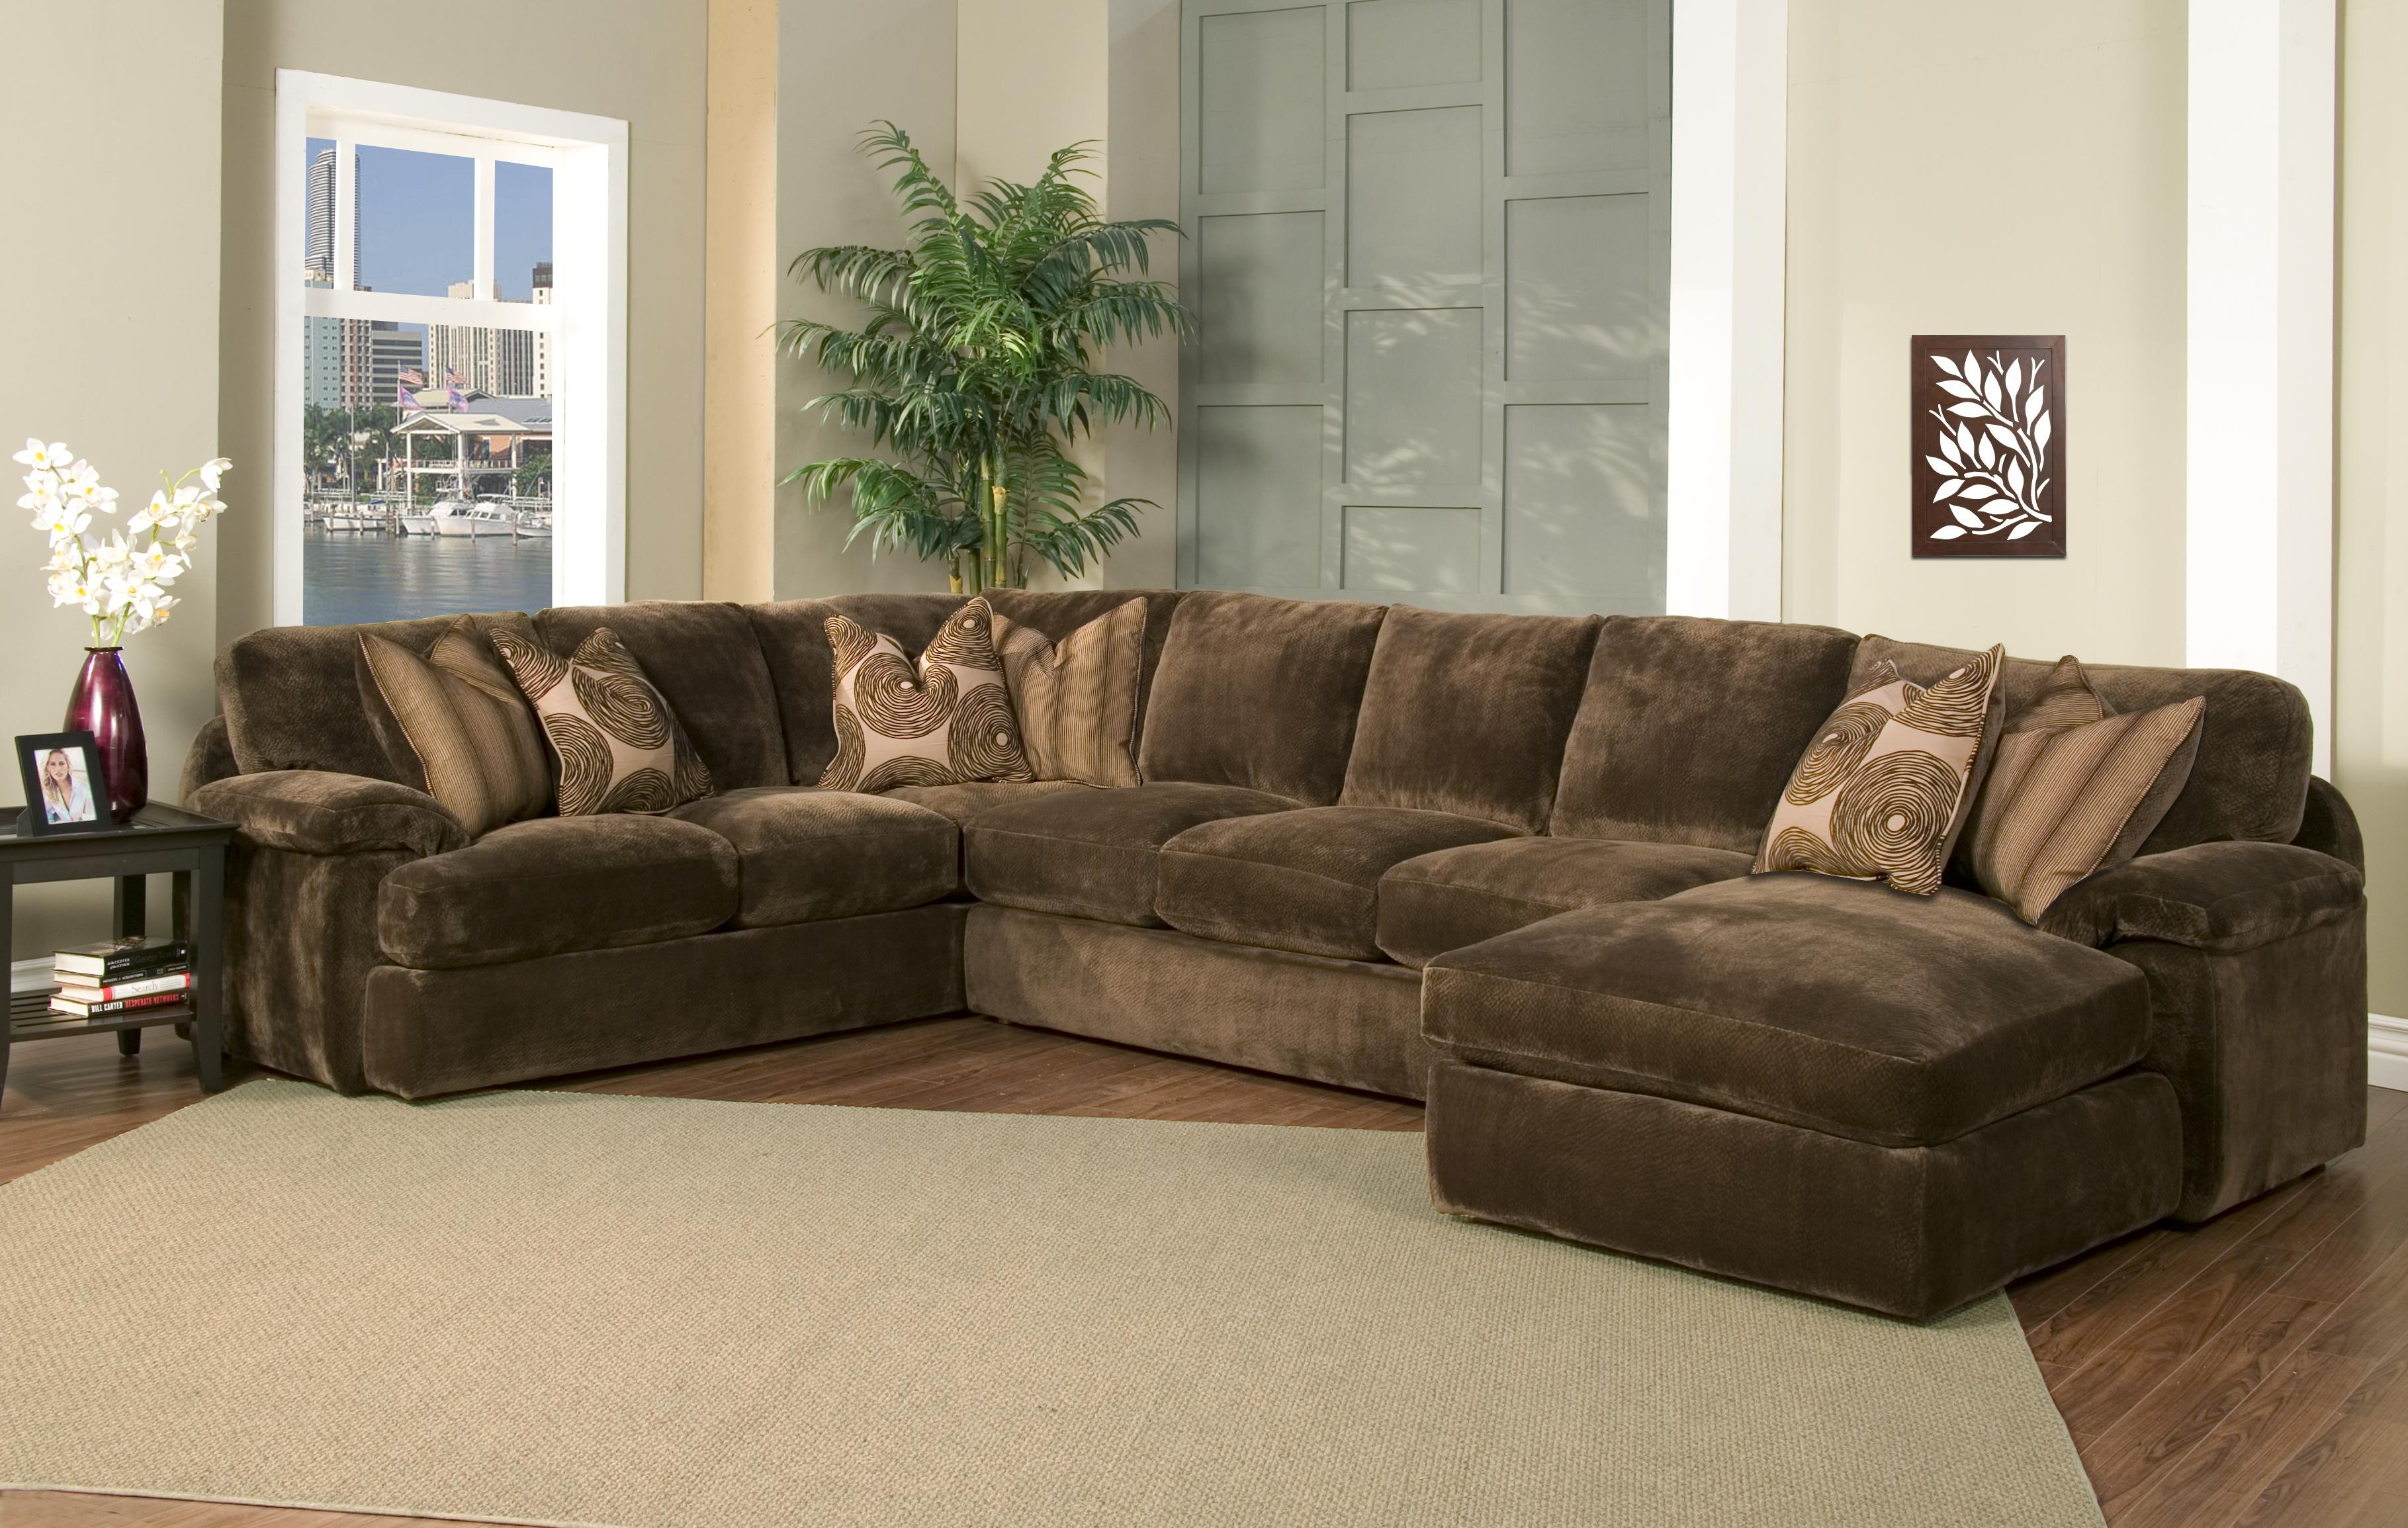 Robert Michaels Sofas And Sectionals In Brown Corduroy Sofas (Image 19 of 20)